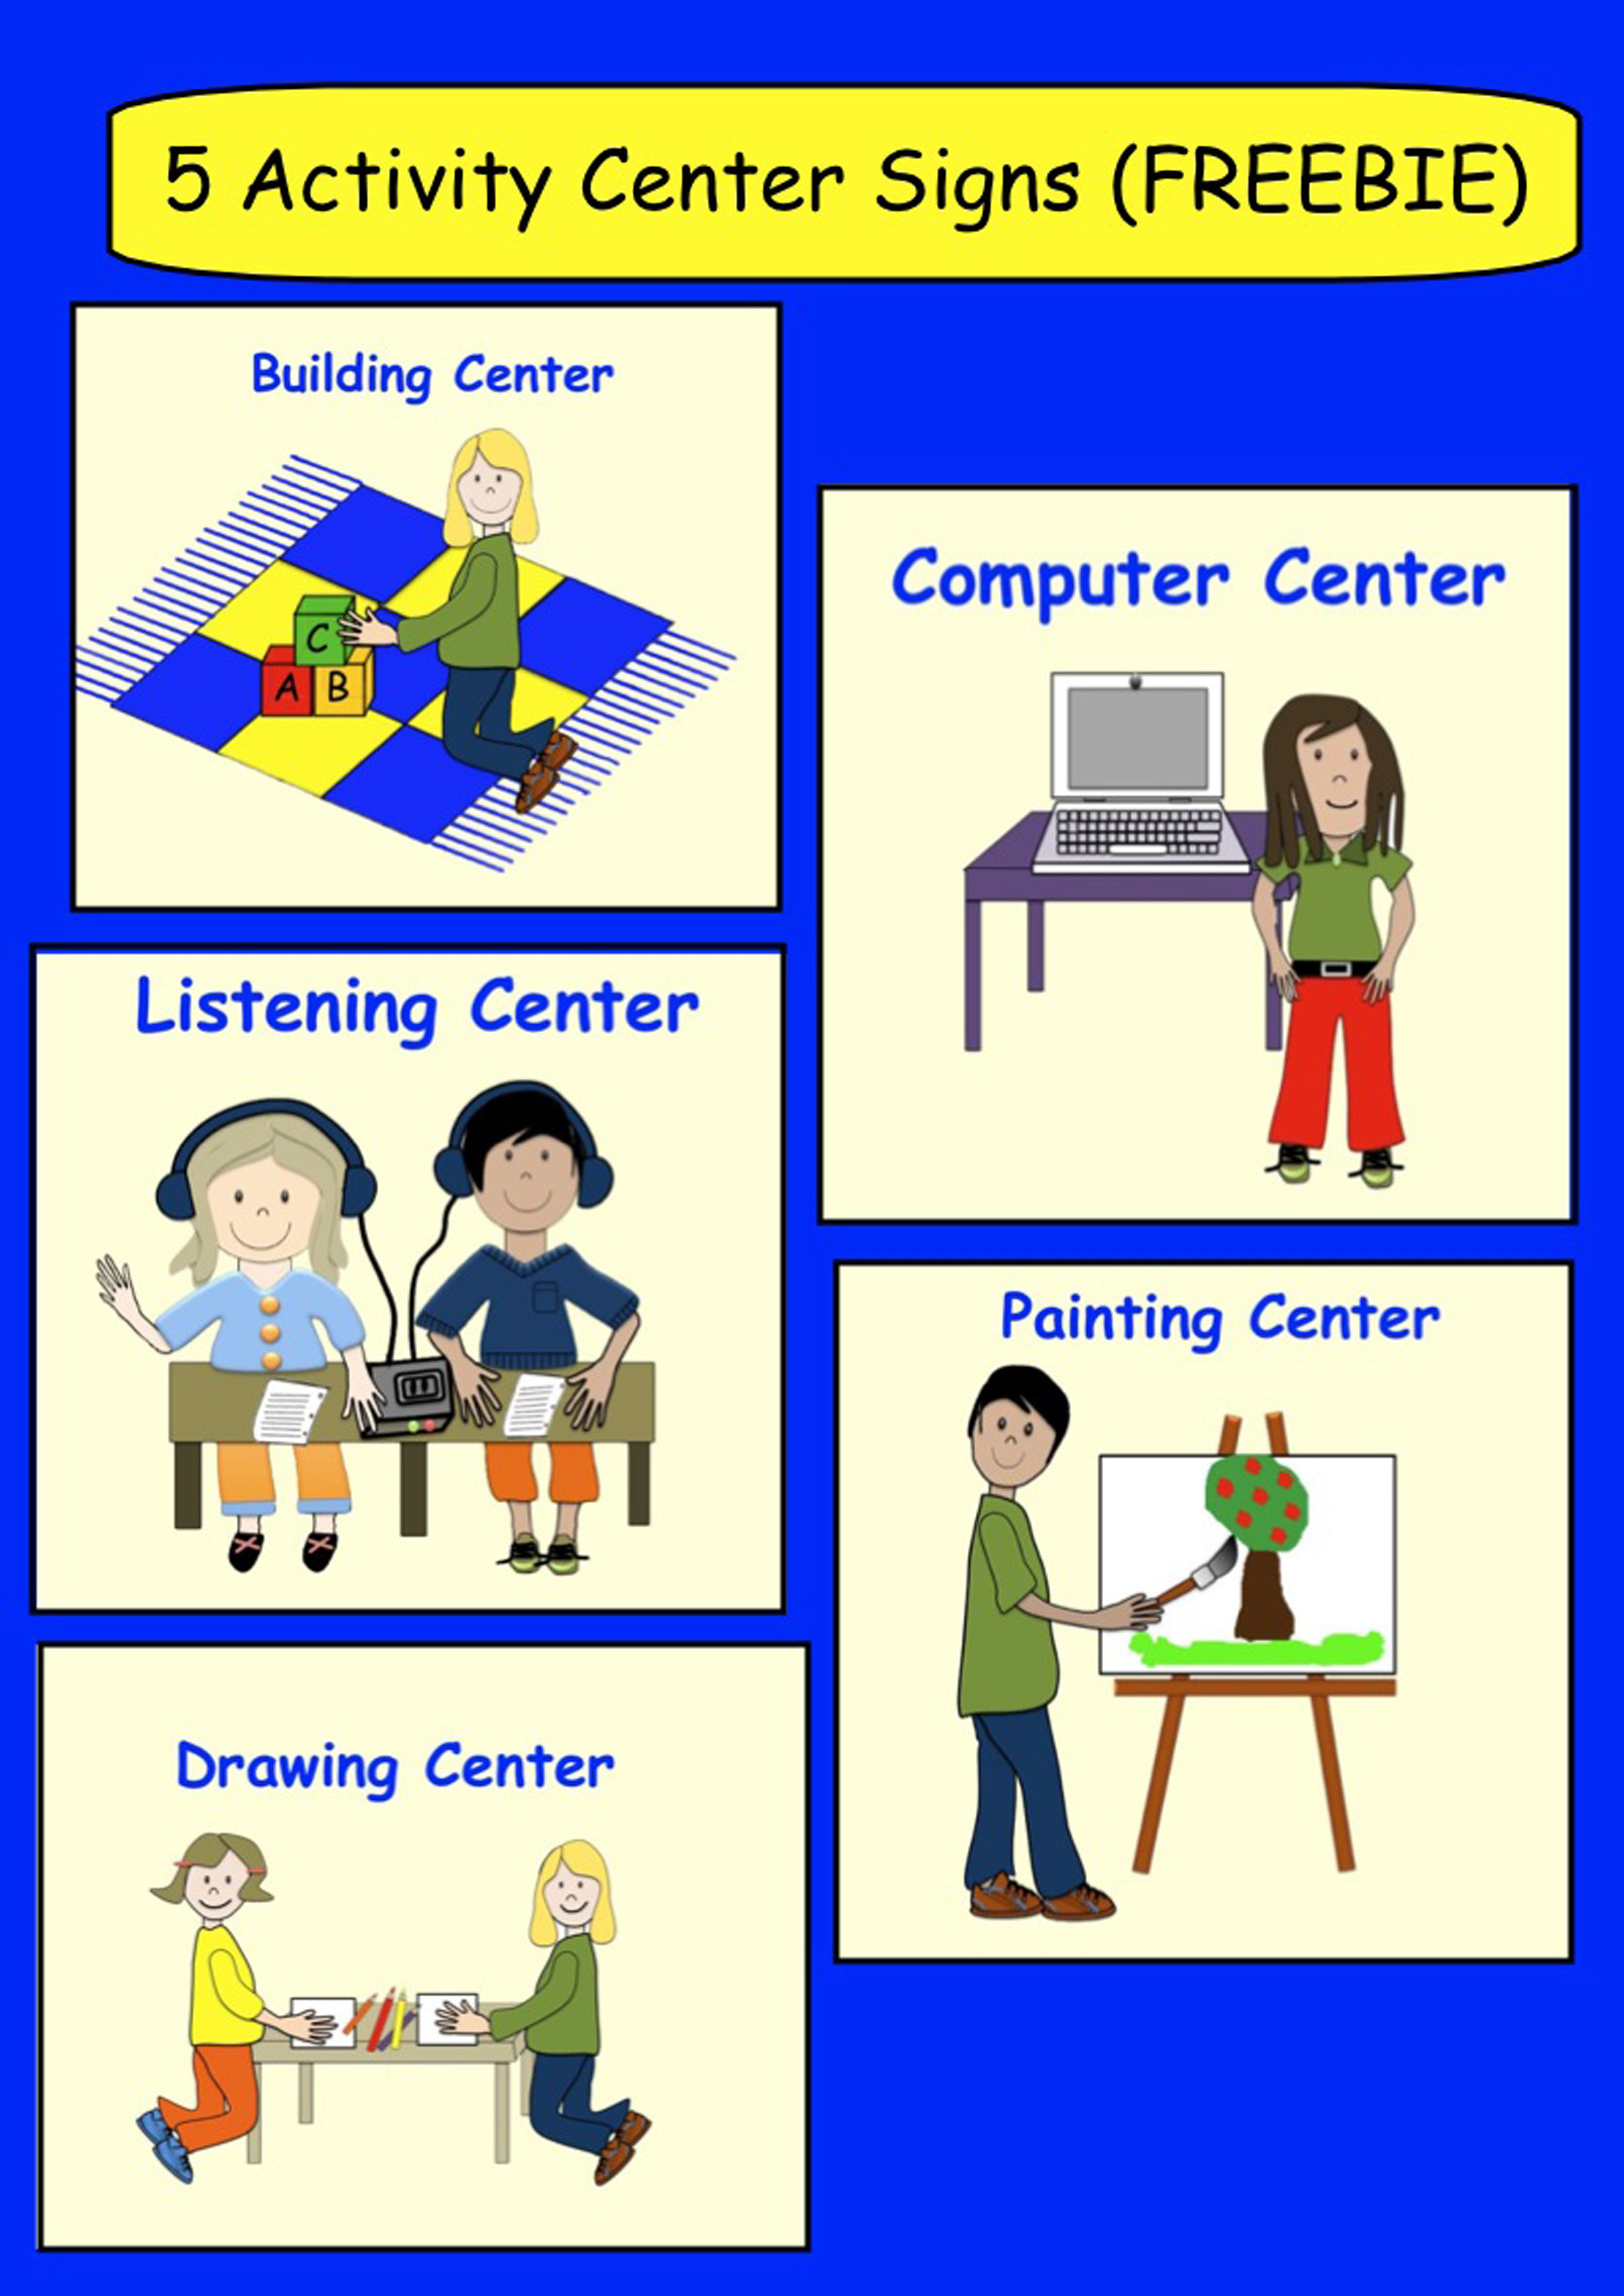 Spelling clipart centre. Freebie activity signs also